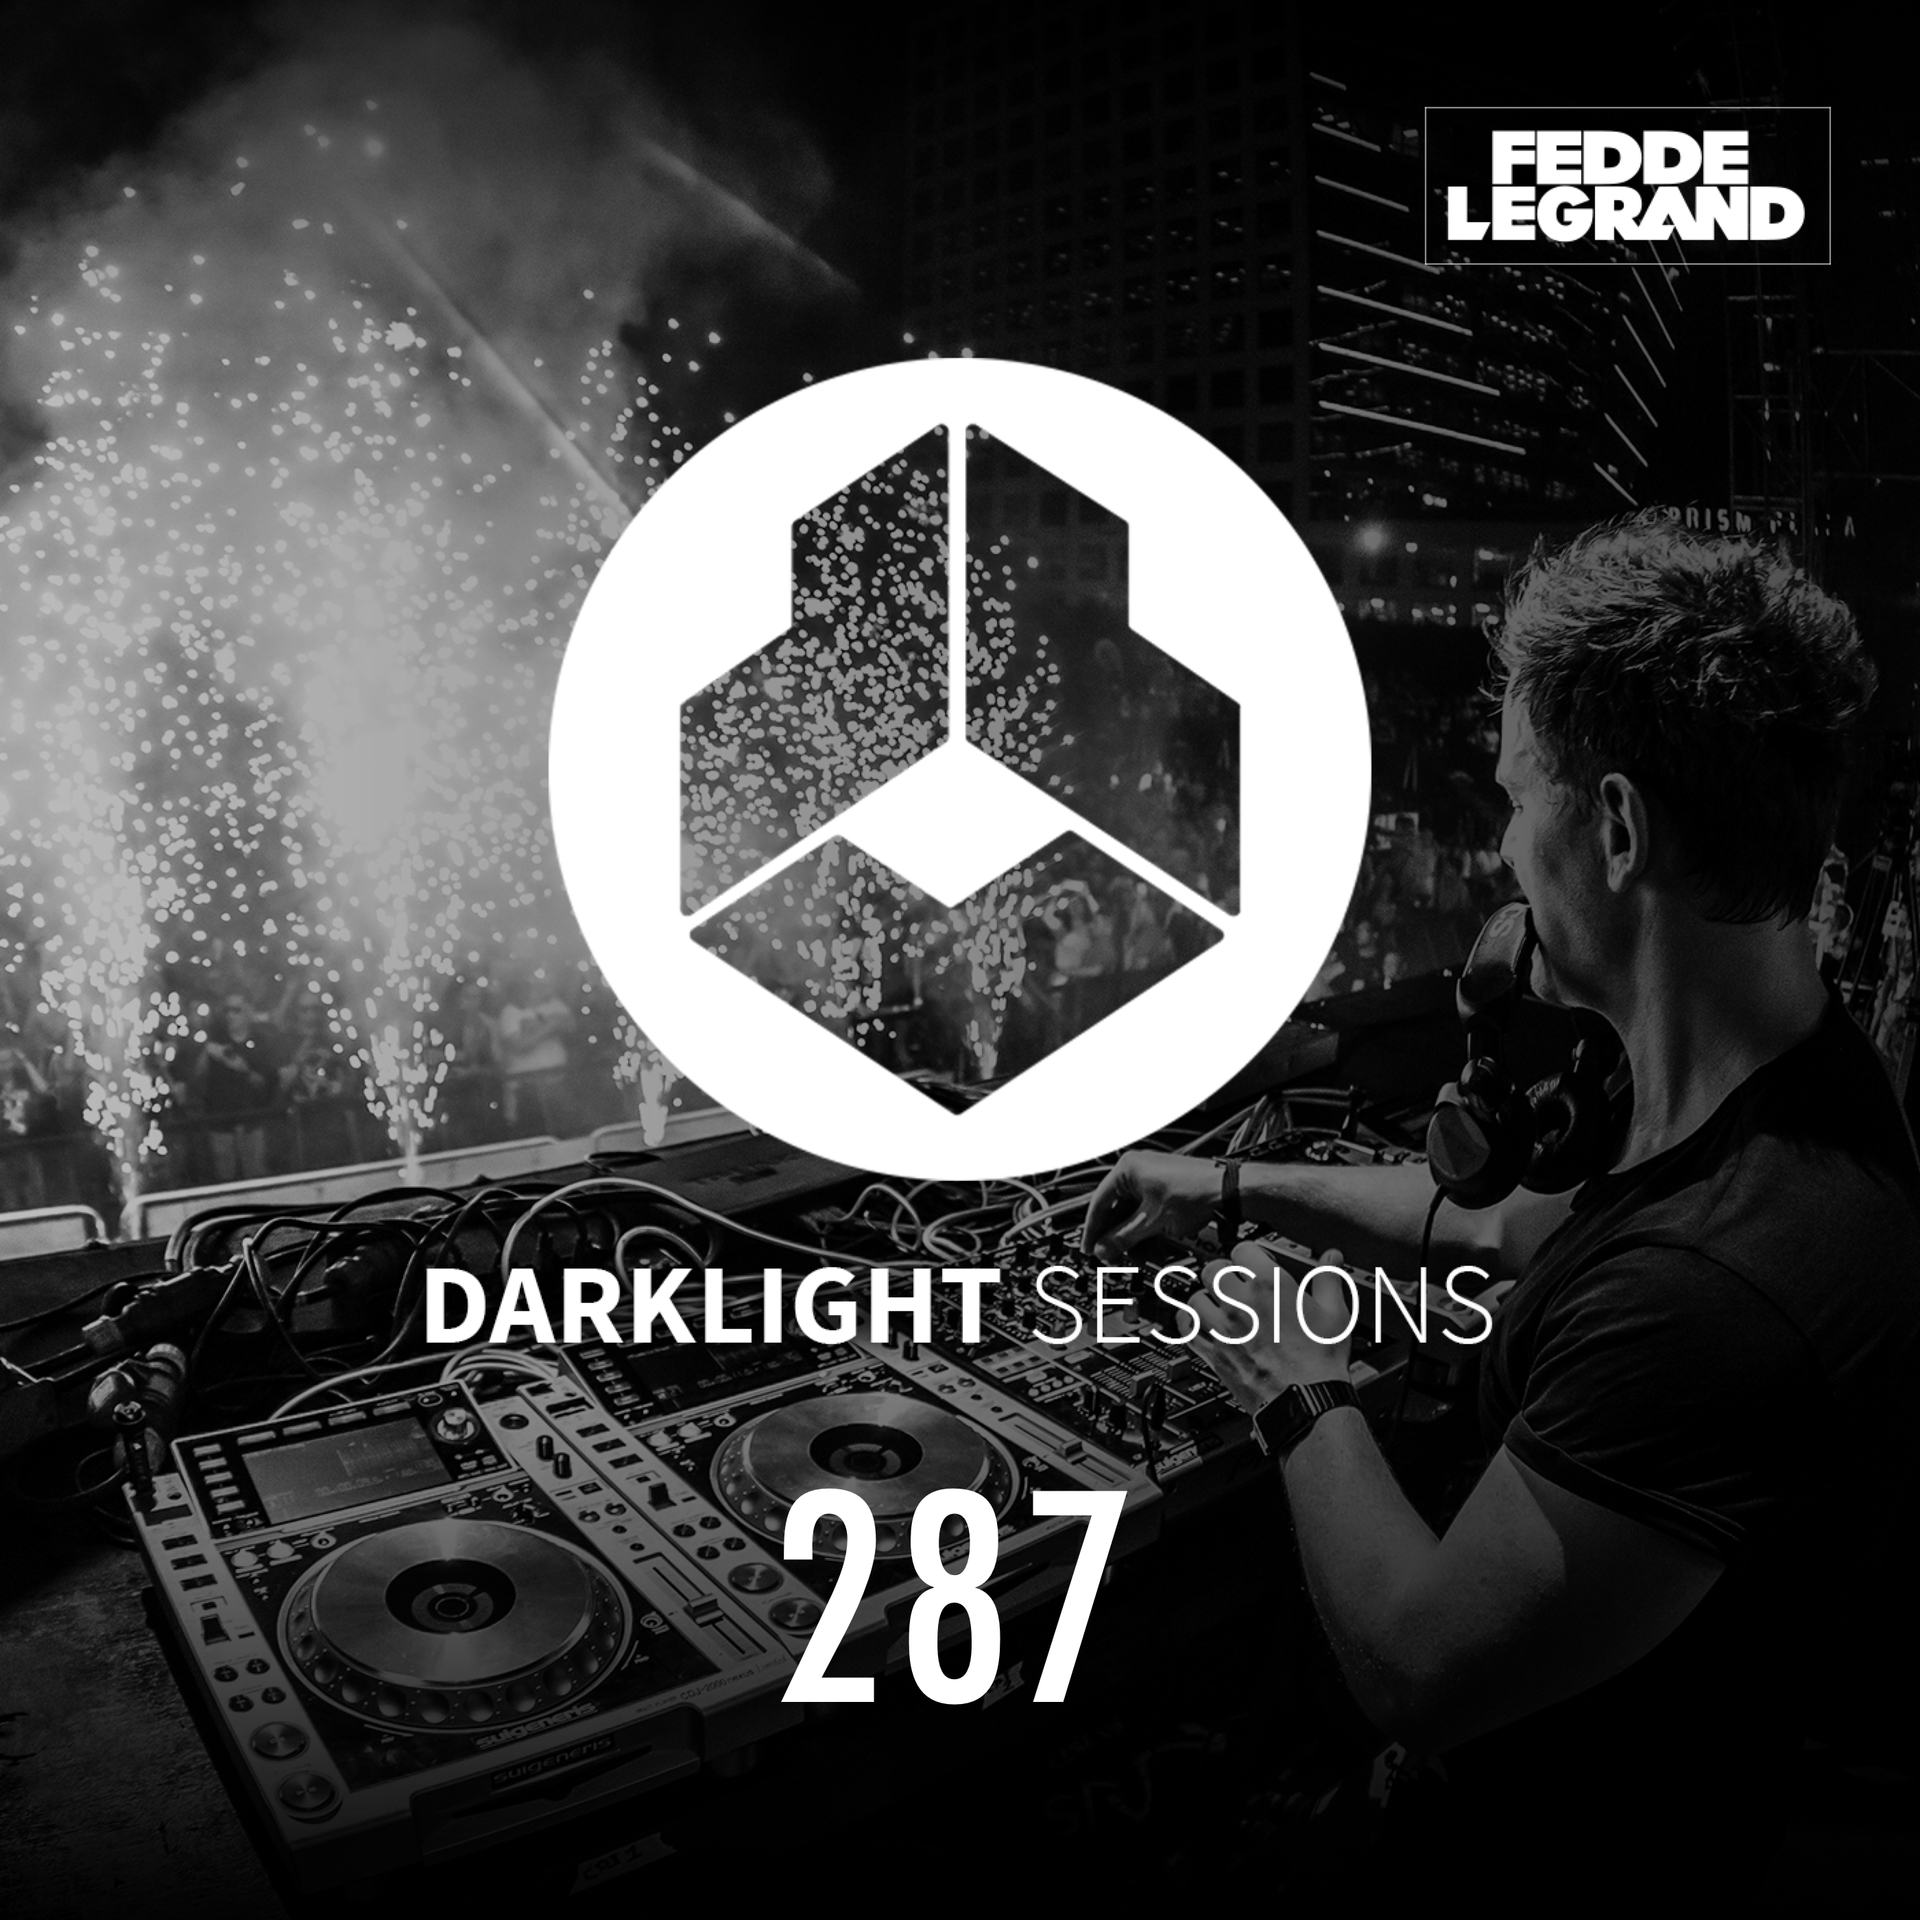 Darklight Sessions 287